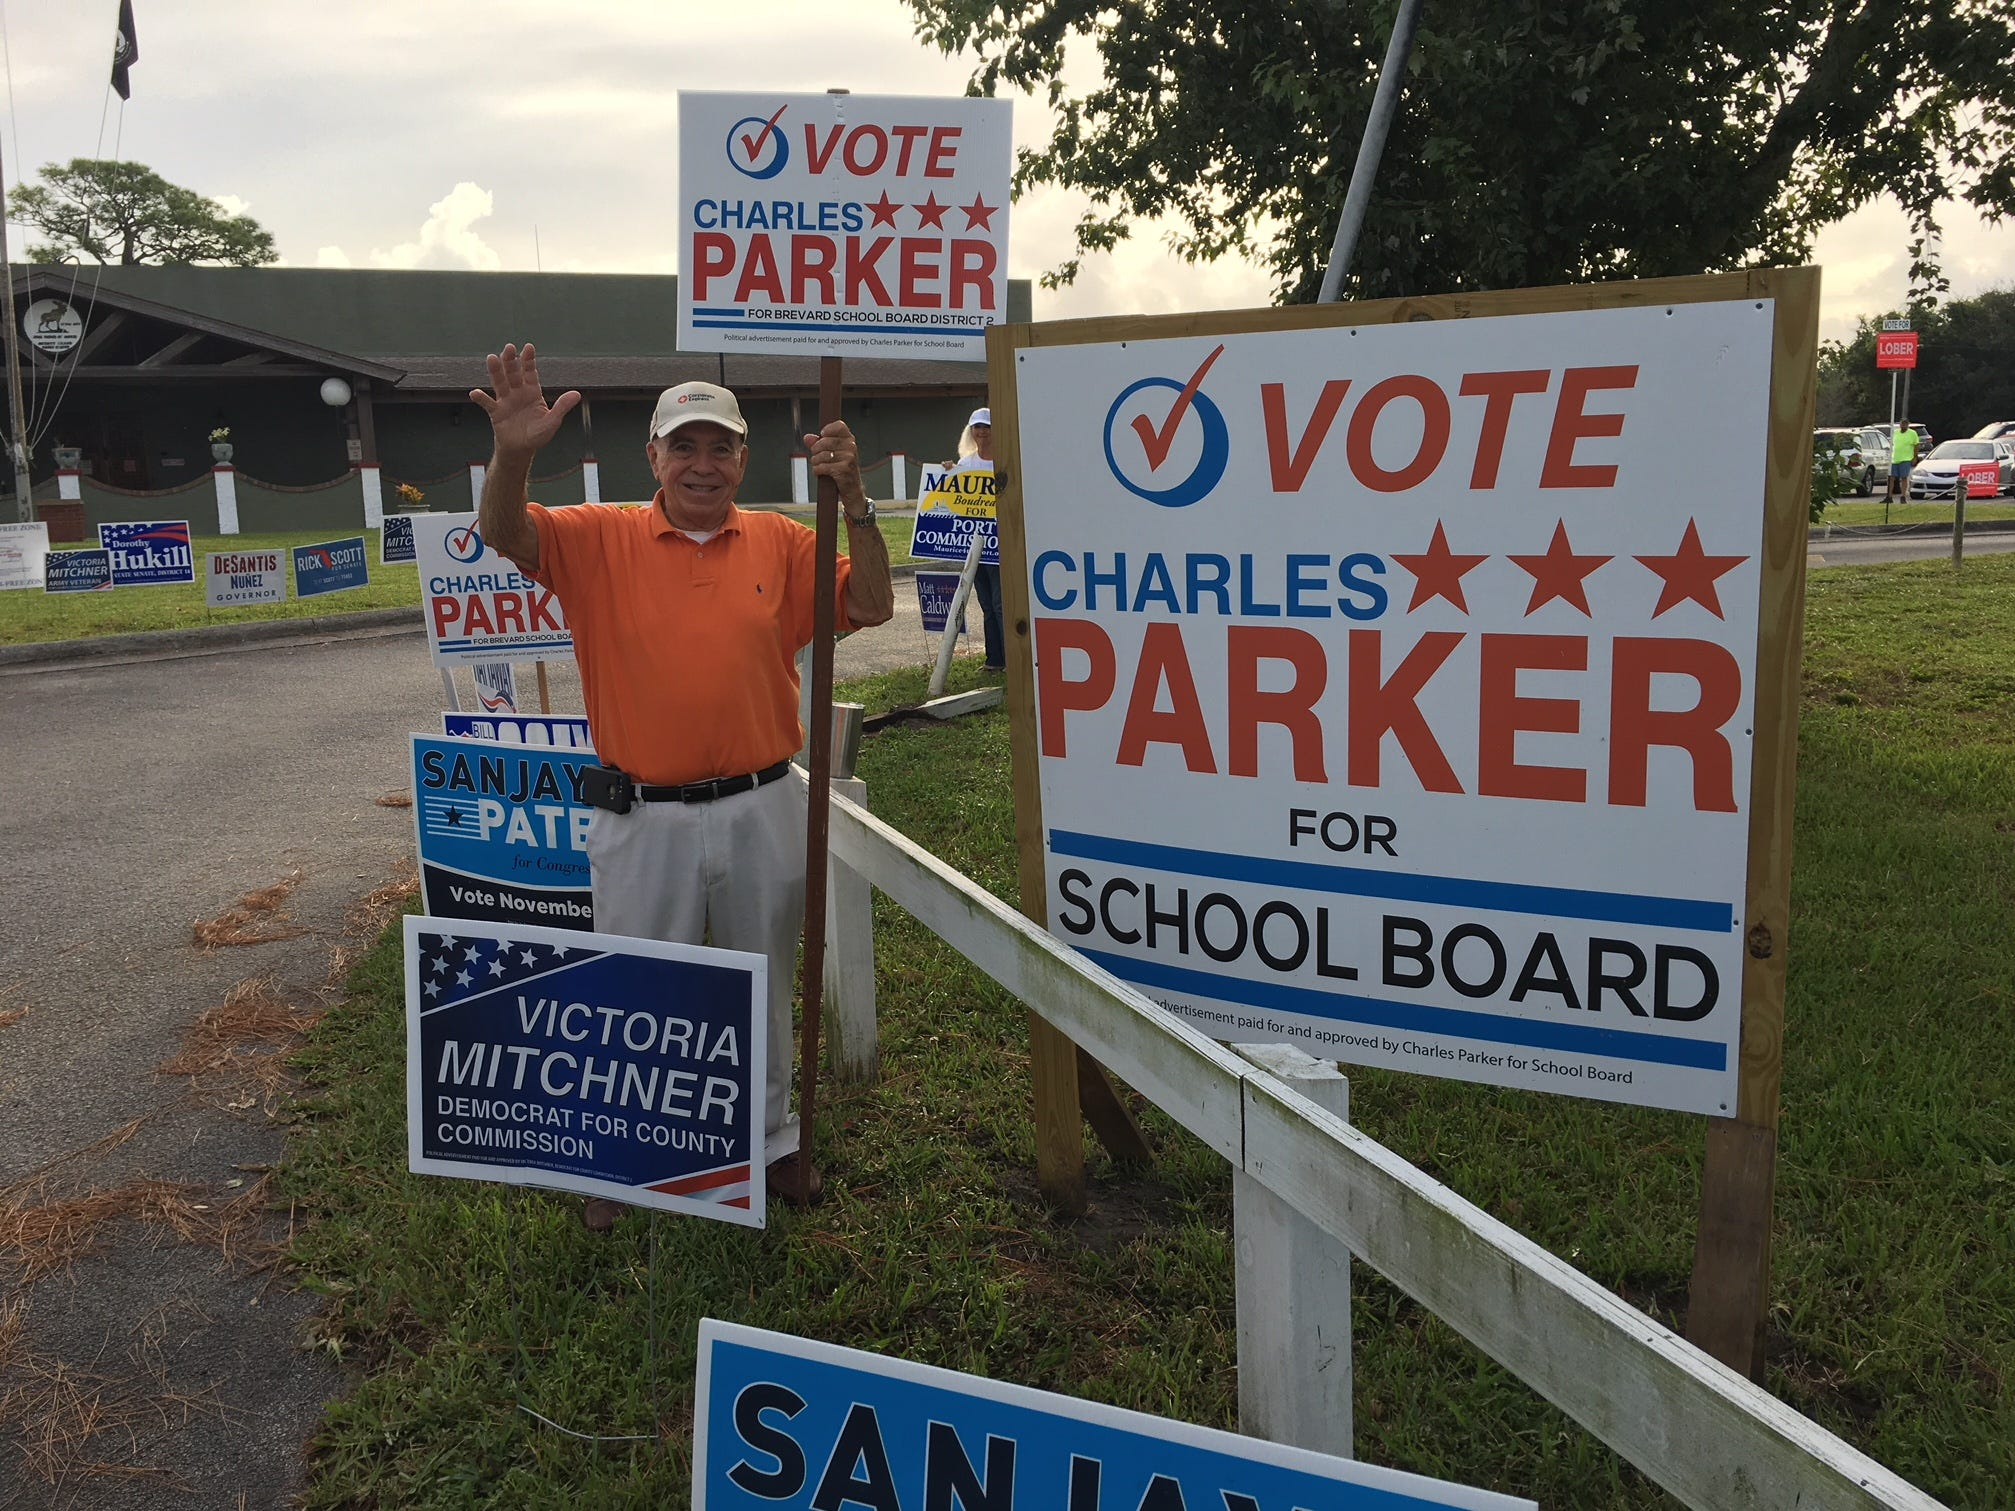 Frank Sullivan campaigning for Parker at Moose Lodge on Merritt Island.